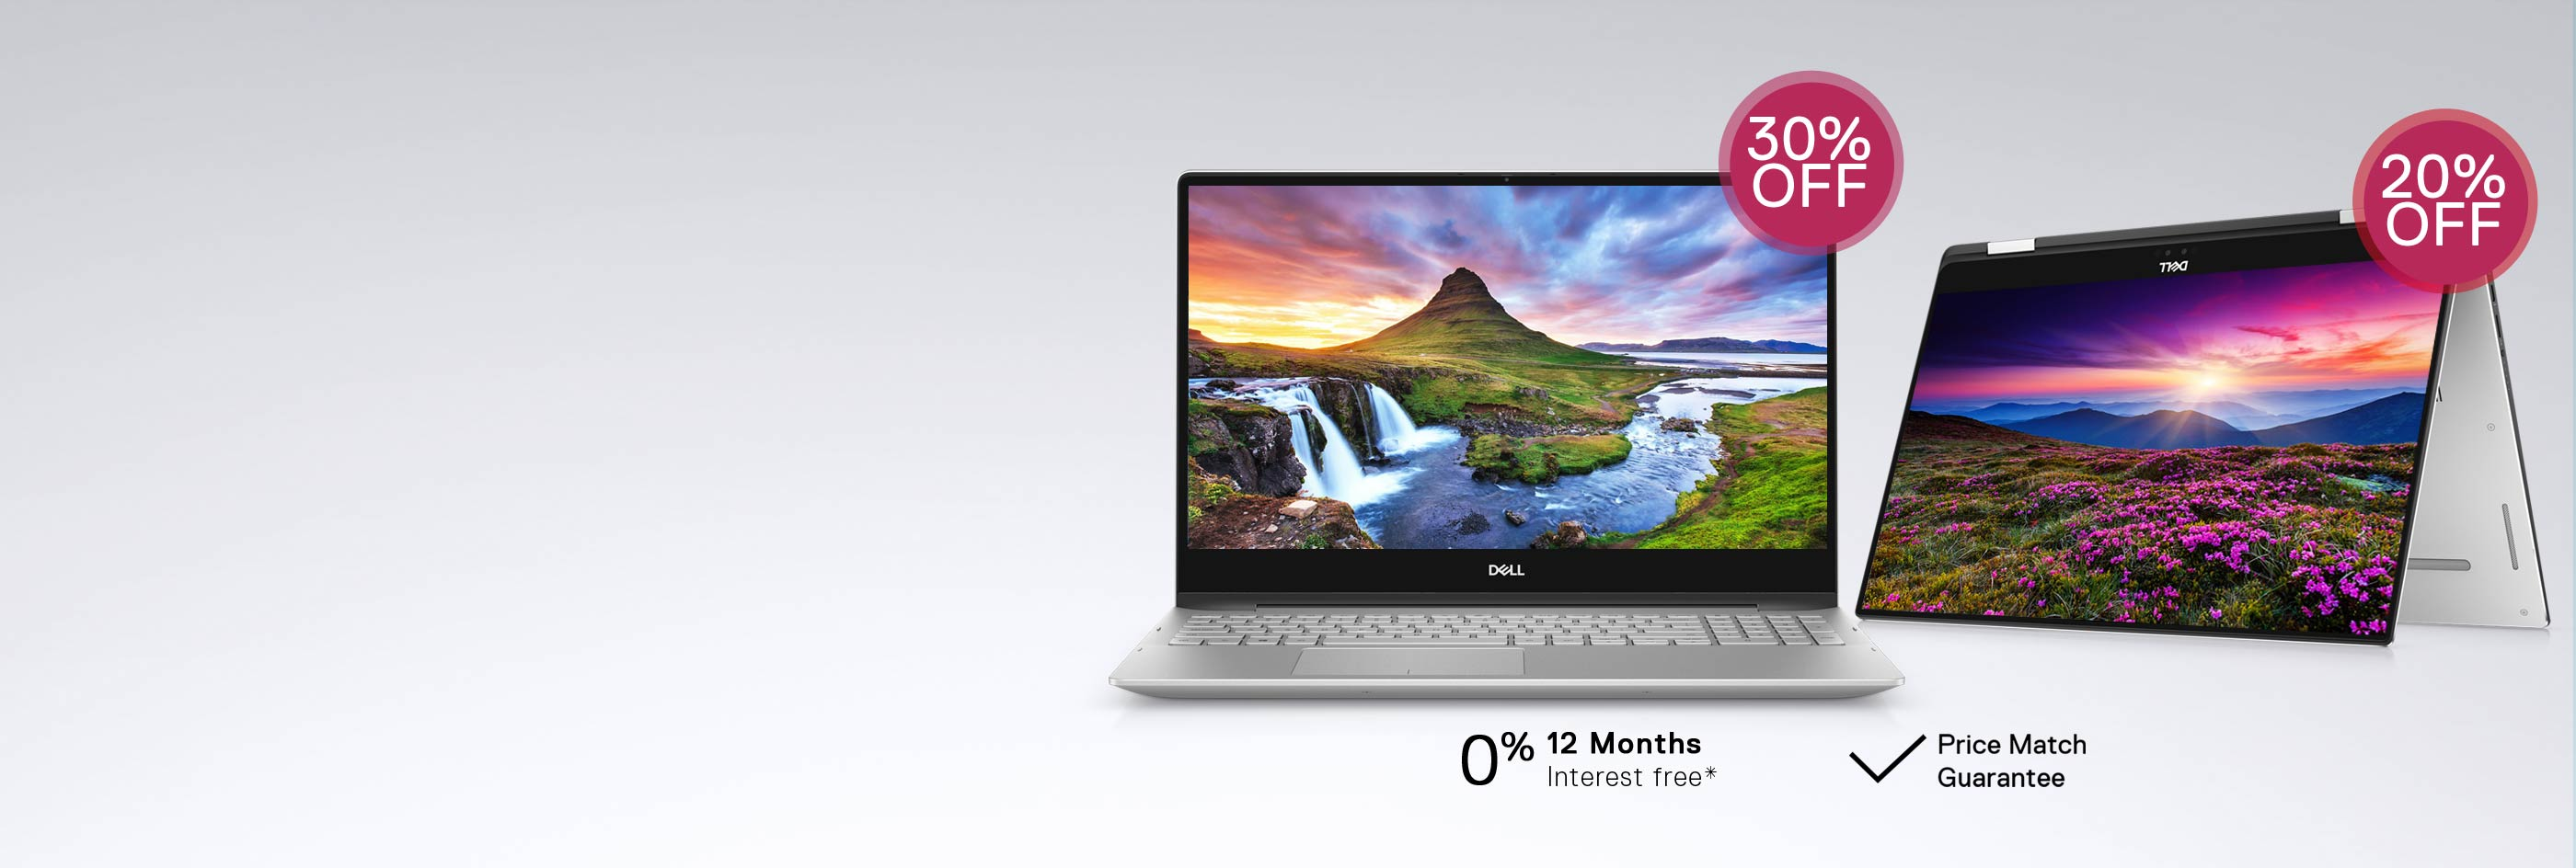 coupons for dell computers online